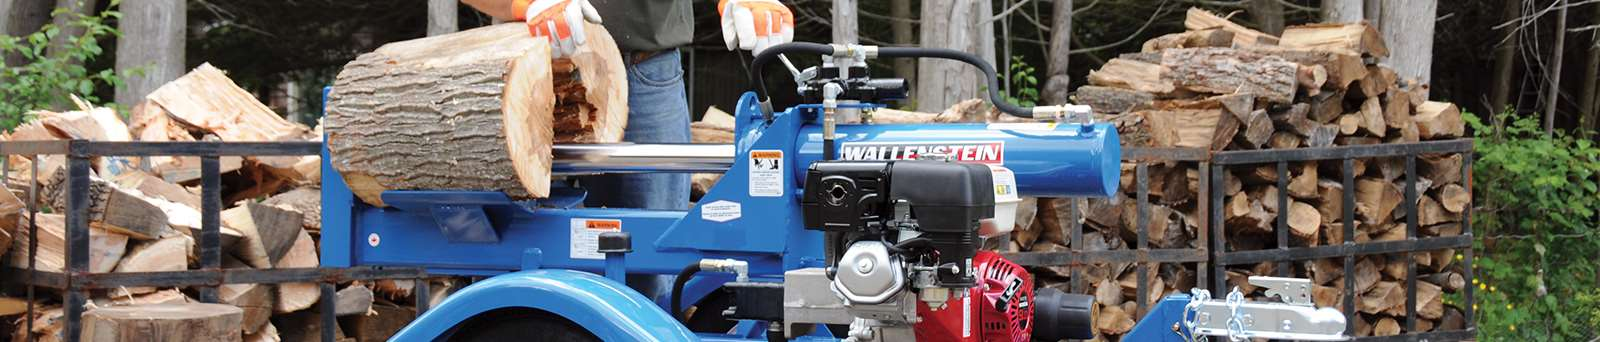 Log Splitters 1 - 1215x520 |